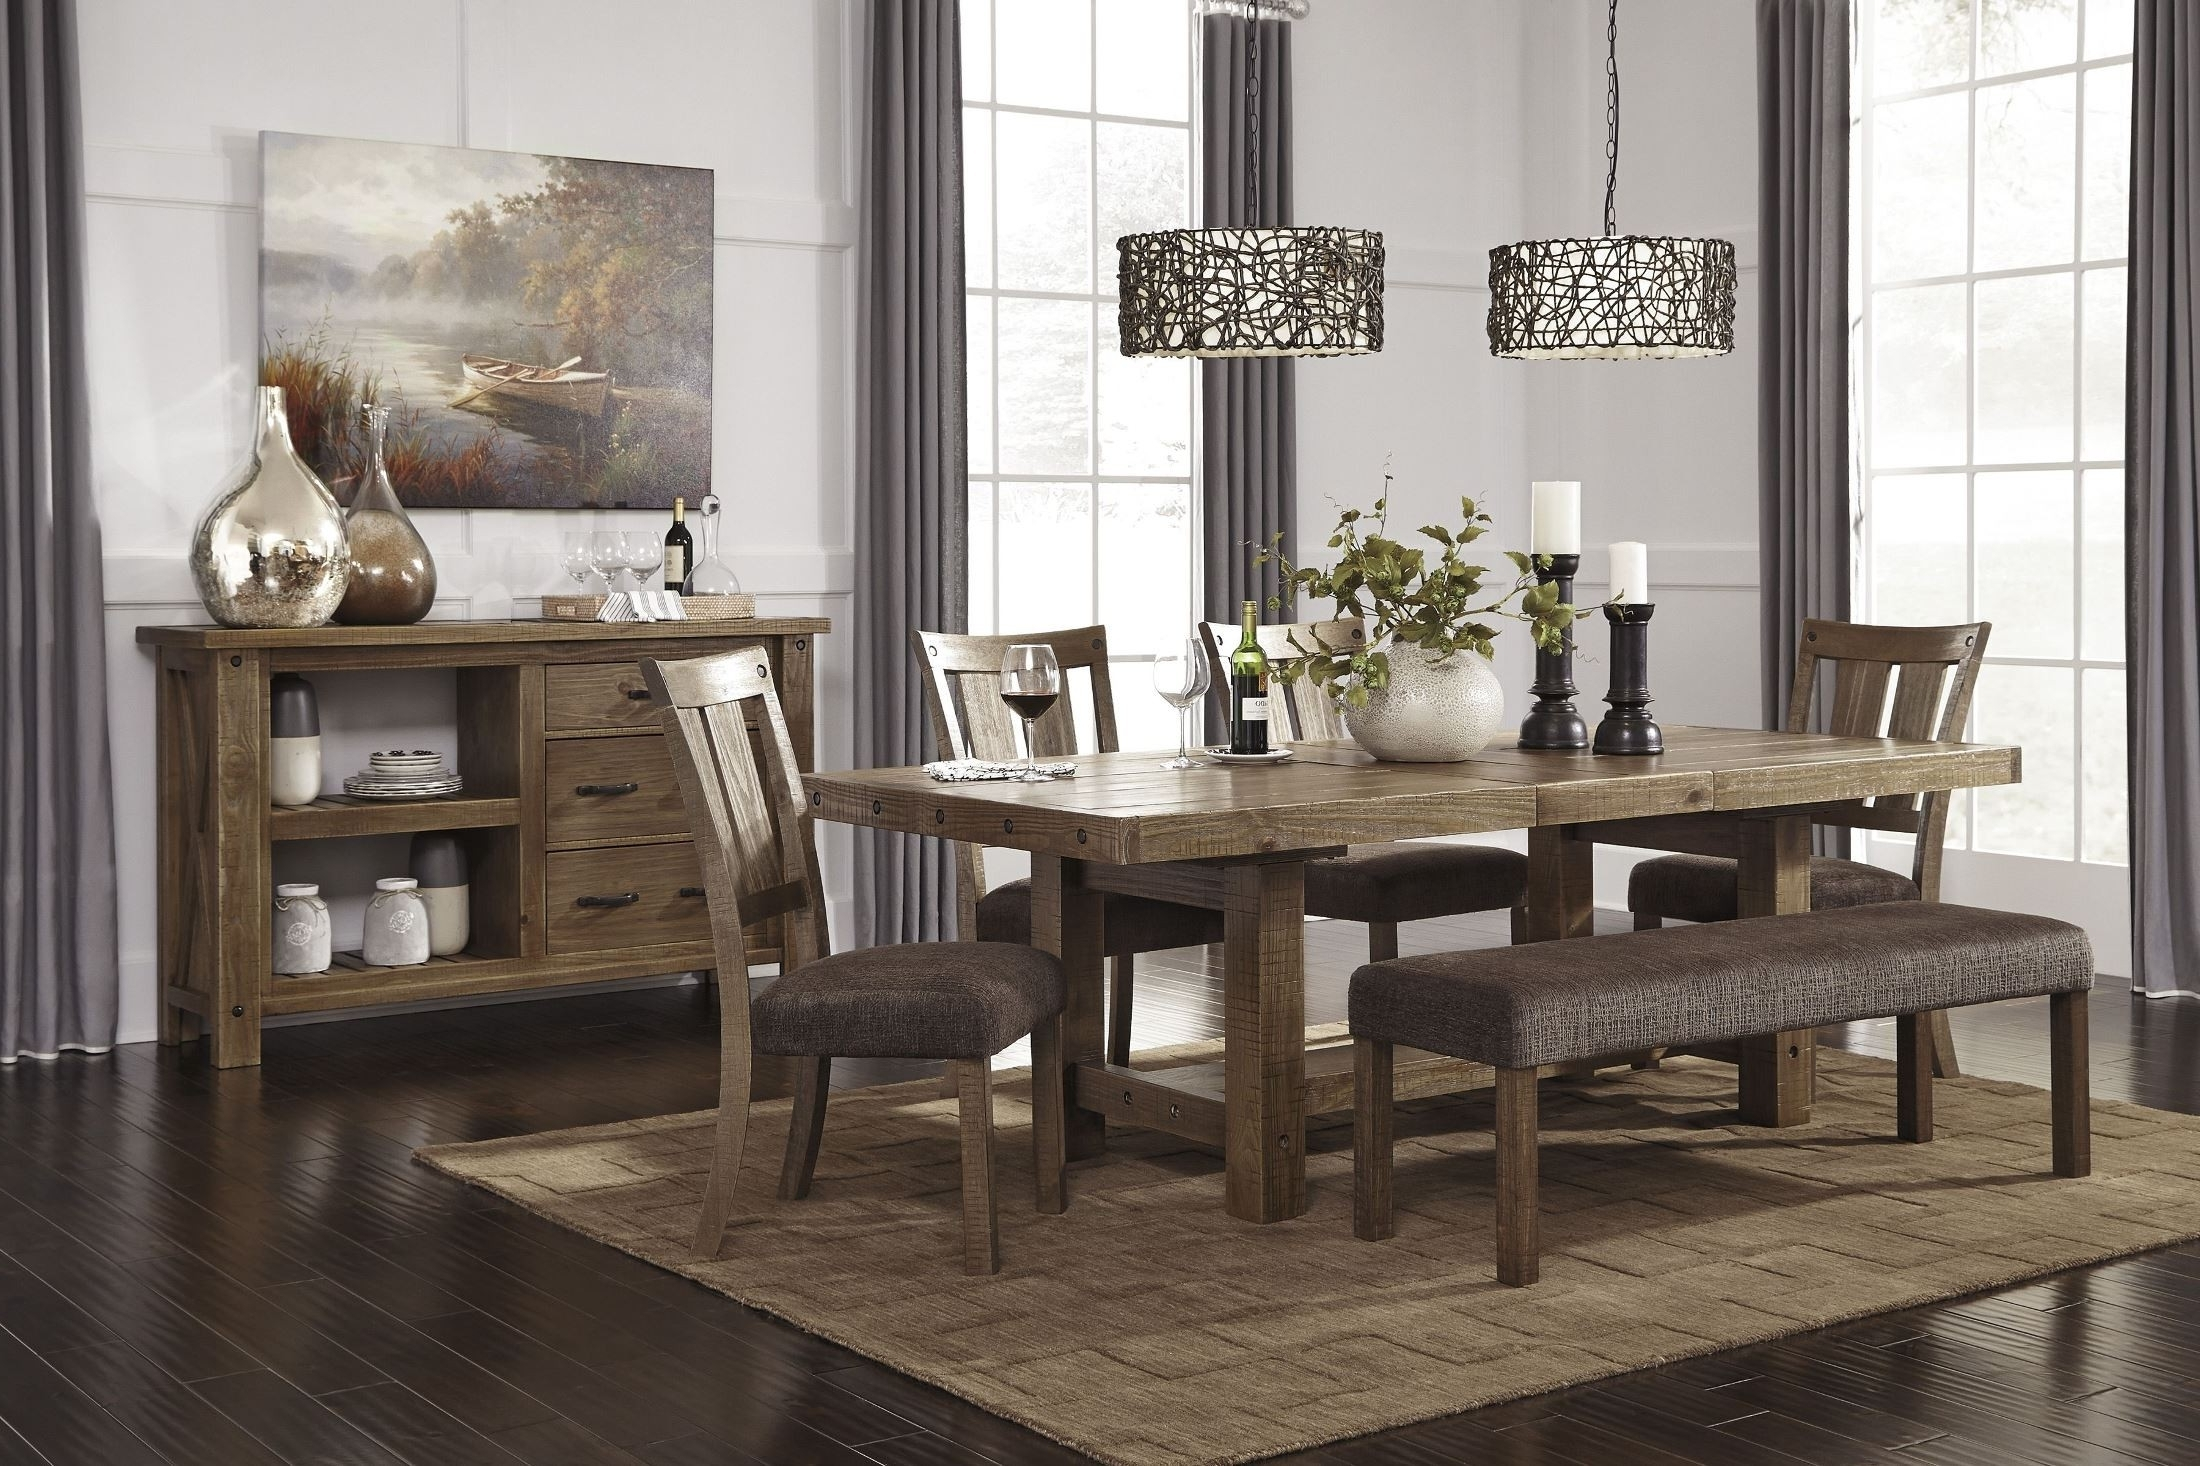 Newest Extendable Dining Tables And Chairs With Regard To Signature Designashley Tamilo Gray/brown Rectangular Extendable (View 20 of 25)